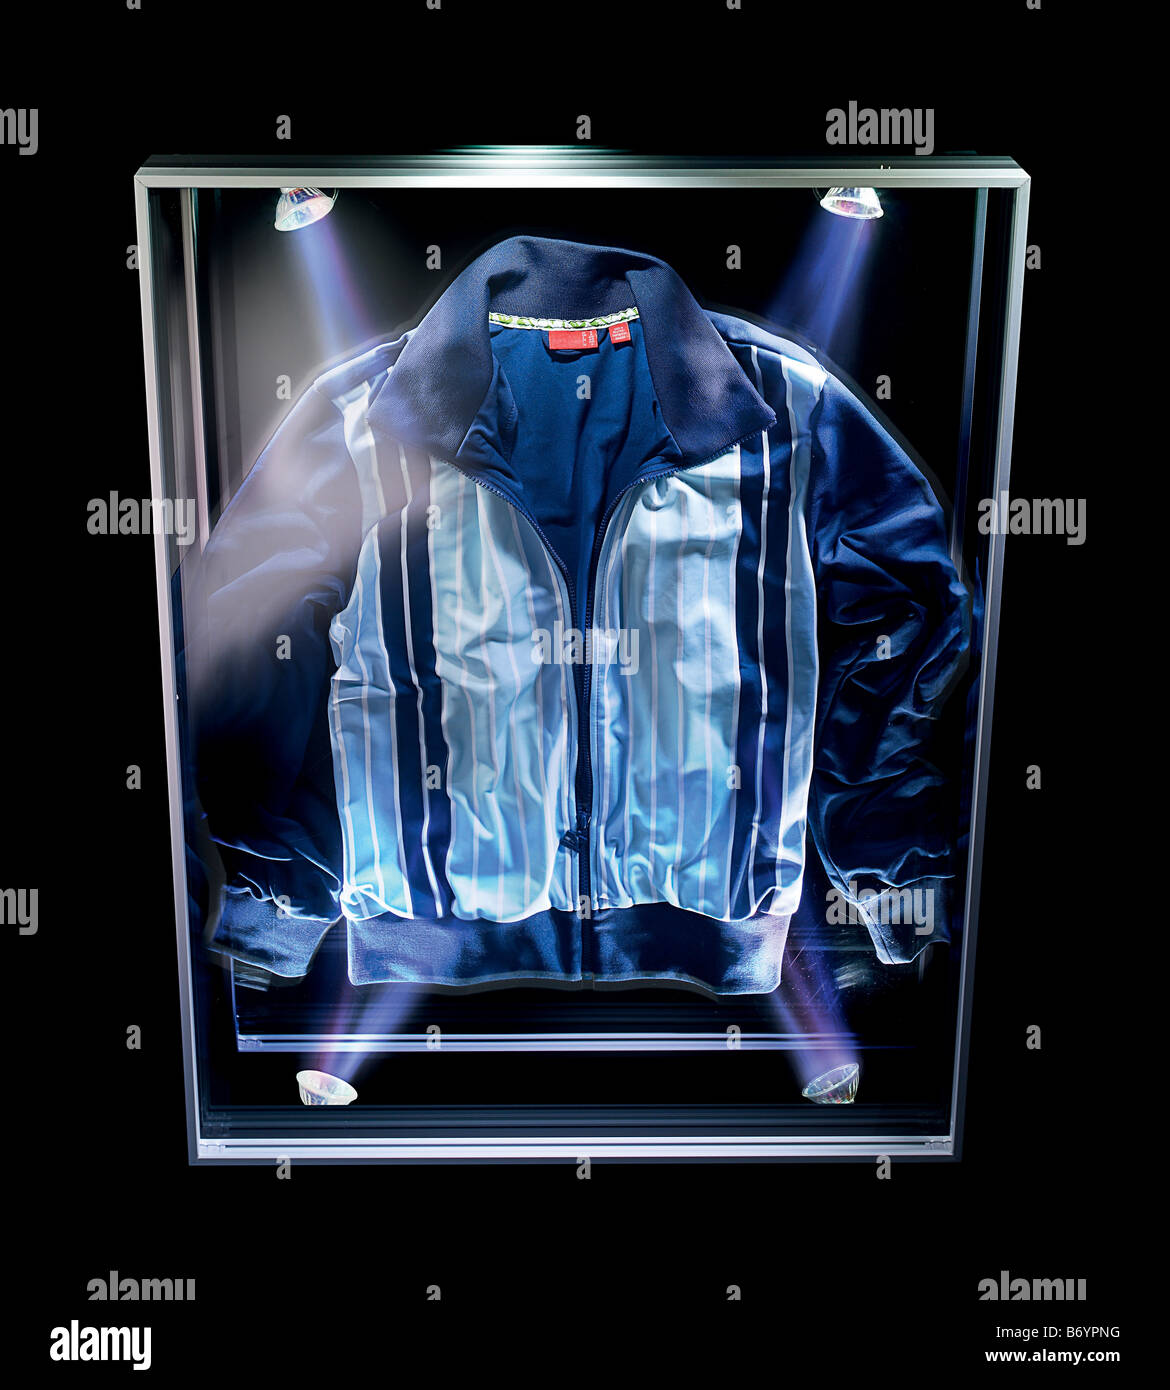 Tracksuit top in a museum case - Stock Image